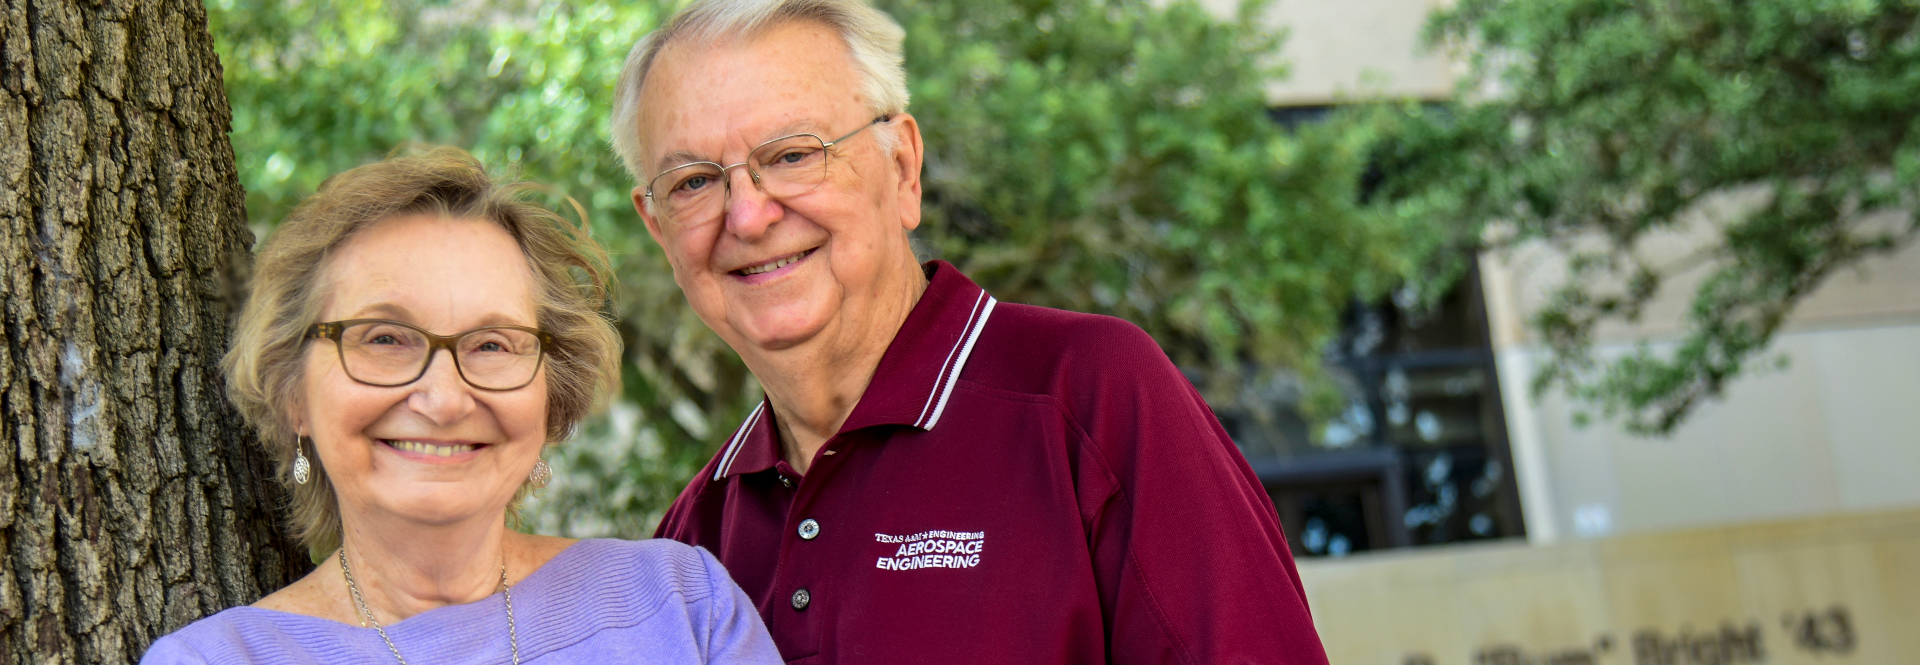 The Texas A&M Foundation has selected Dr. Walter Haisler Jr. '67 as a recipient of its Partner in Philanthropy Award.